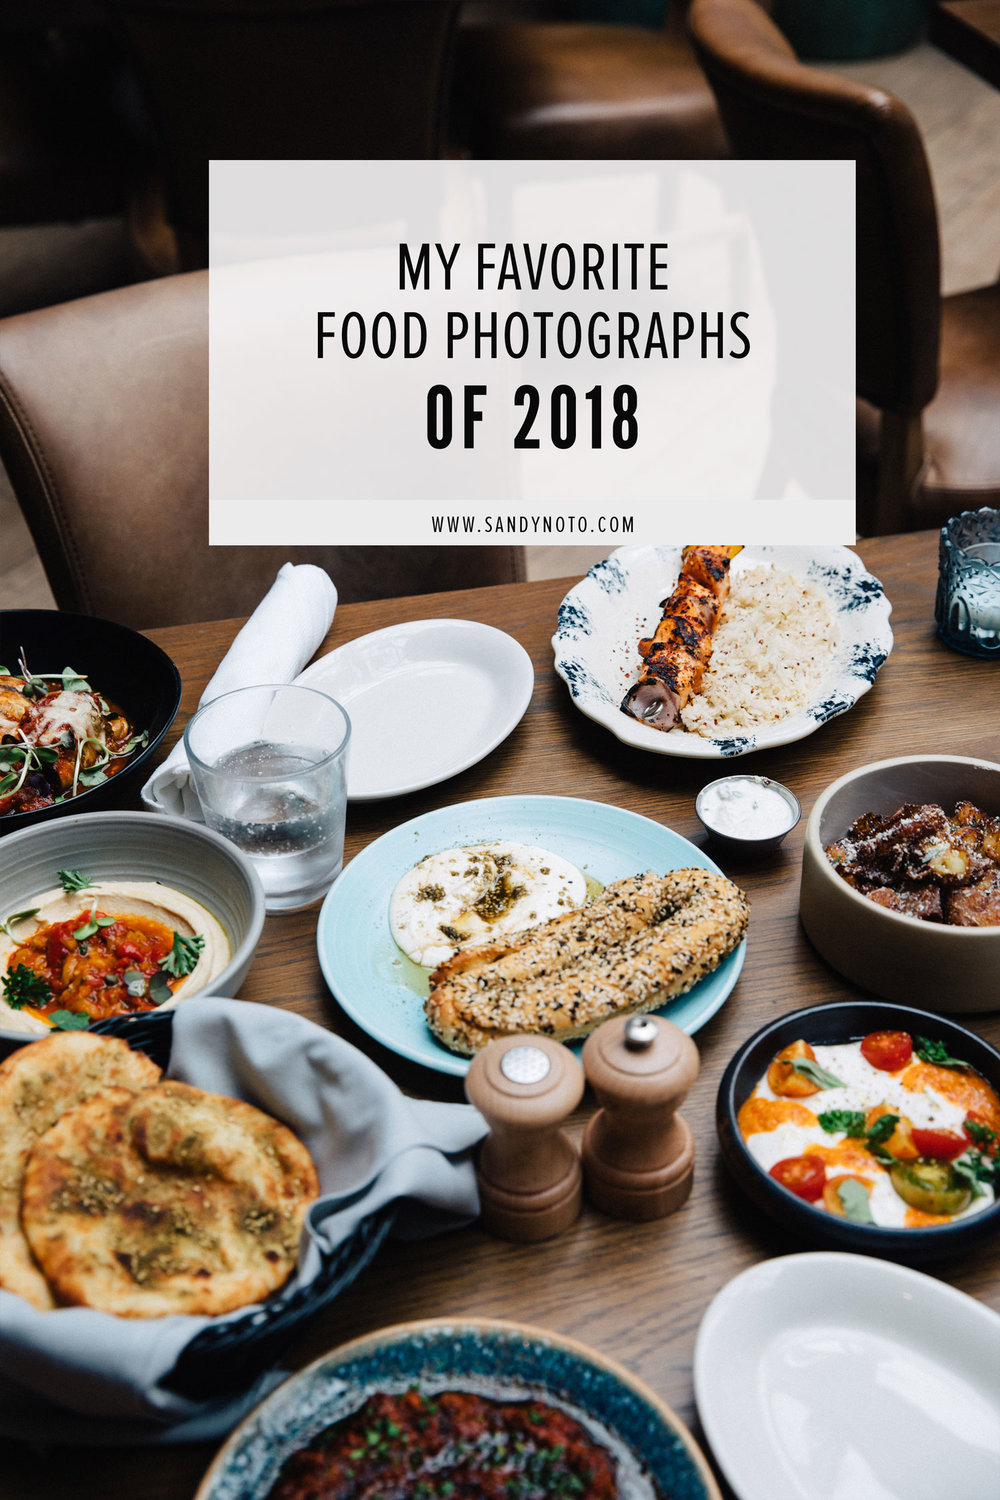 My Favorite Food Photographs from 2018